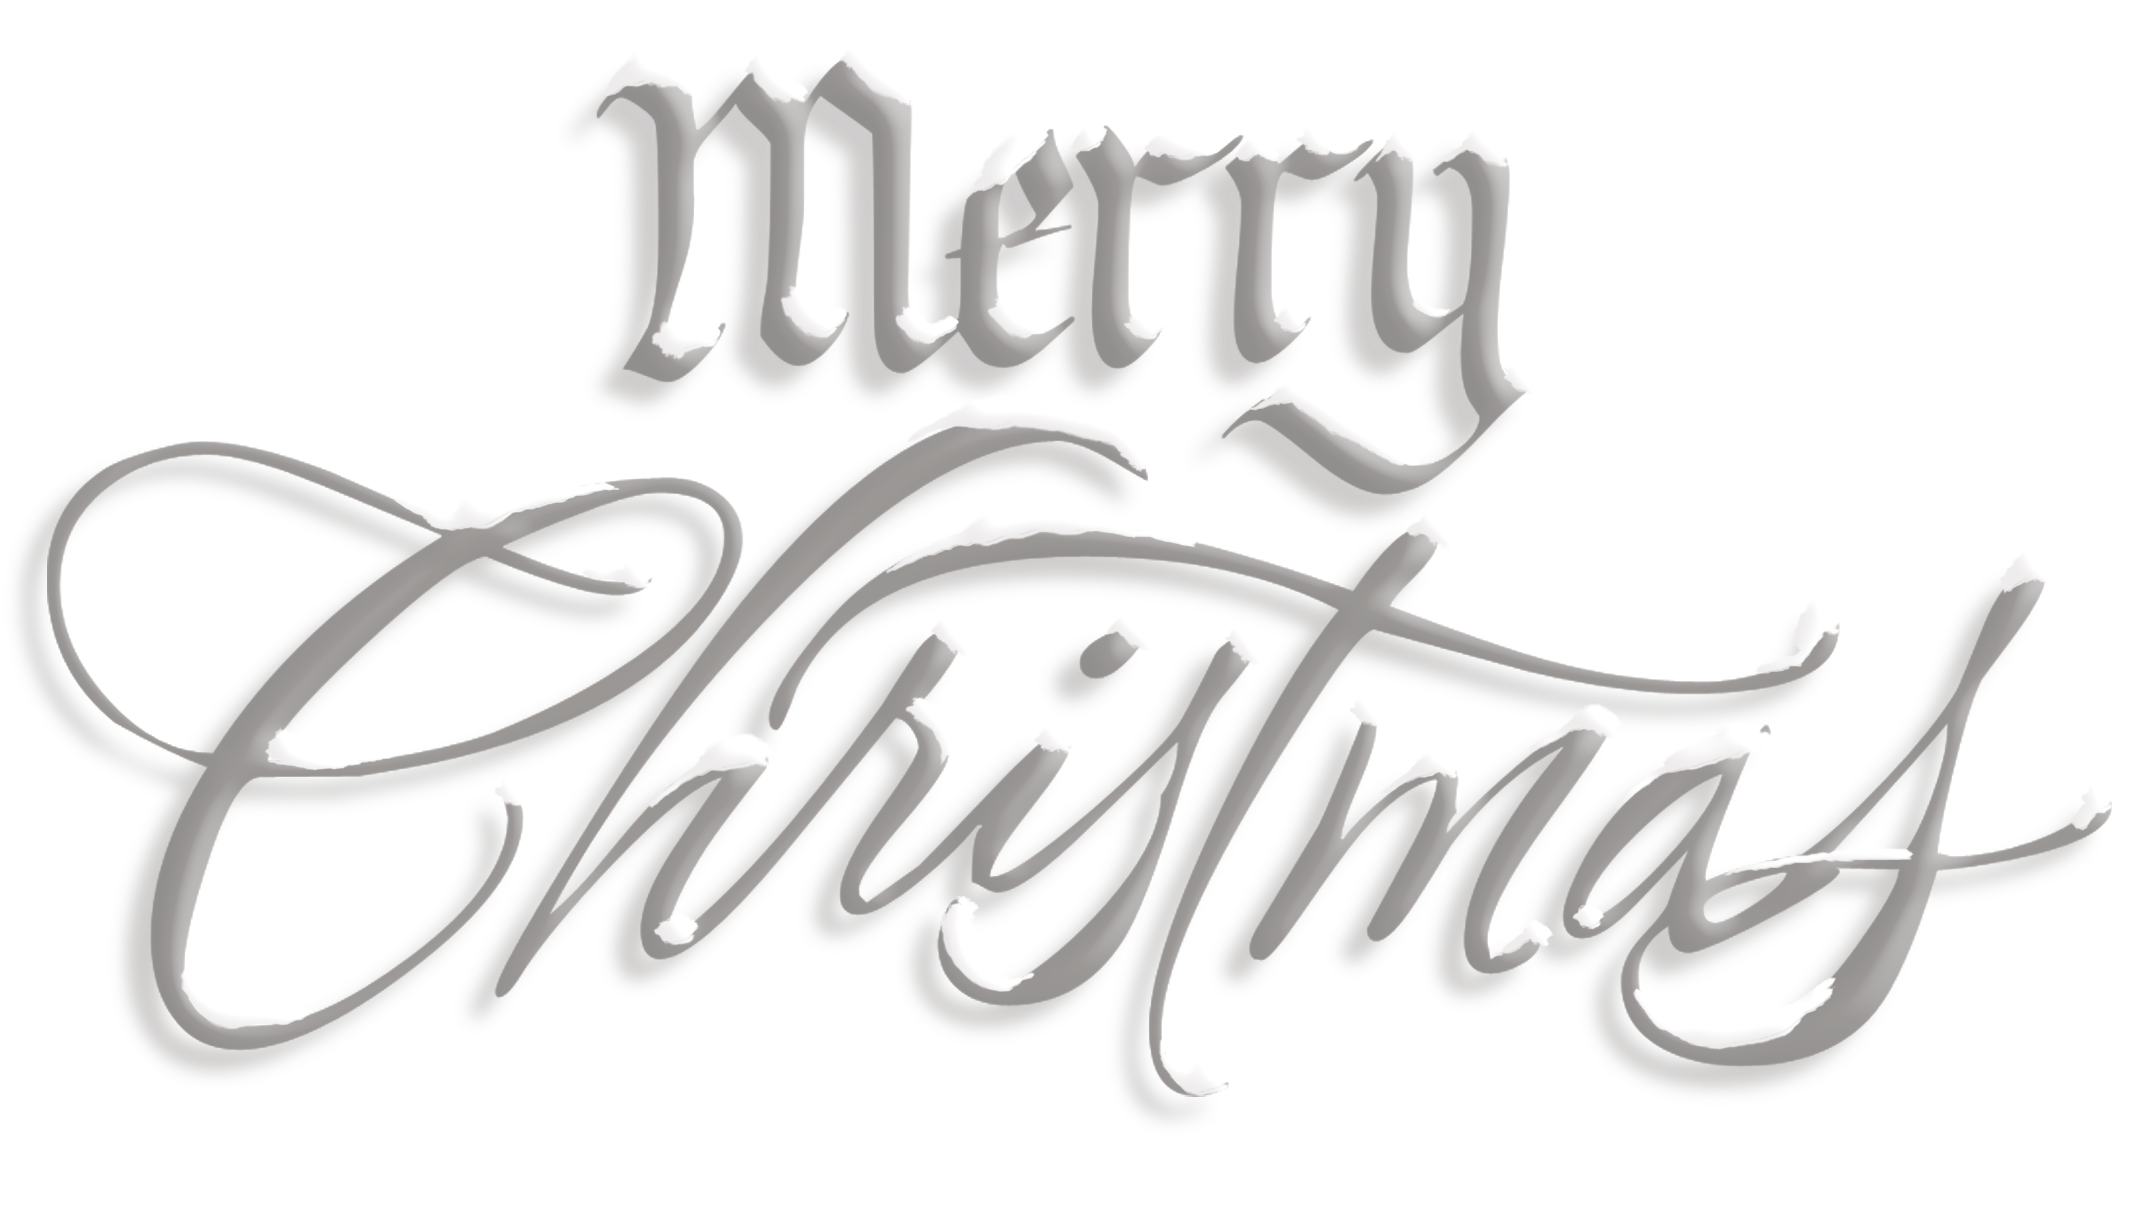 Merry christmas text gallery. Words clipart transparent